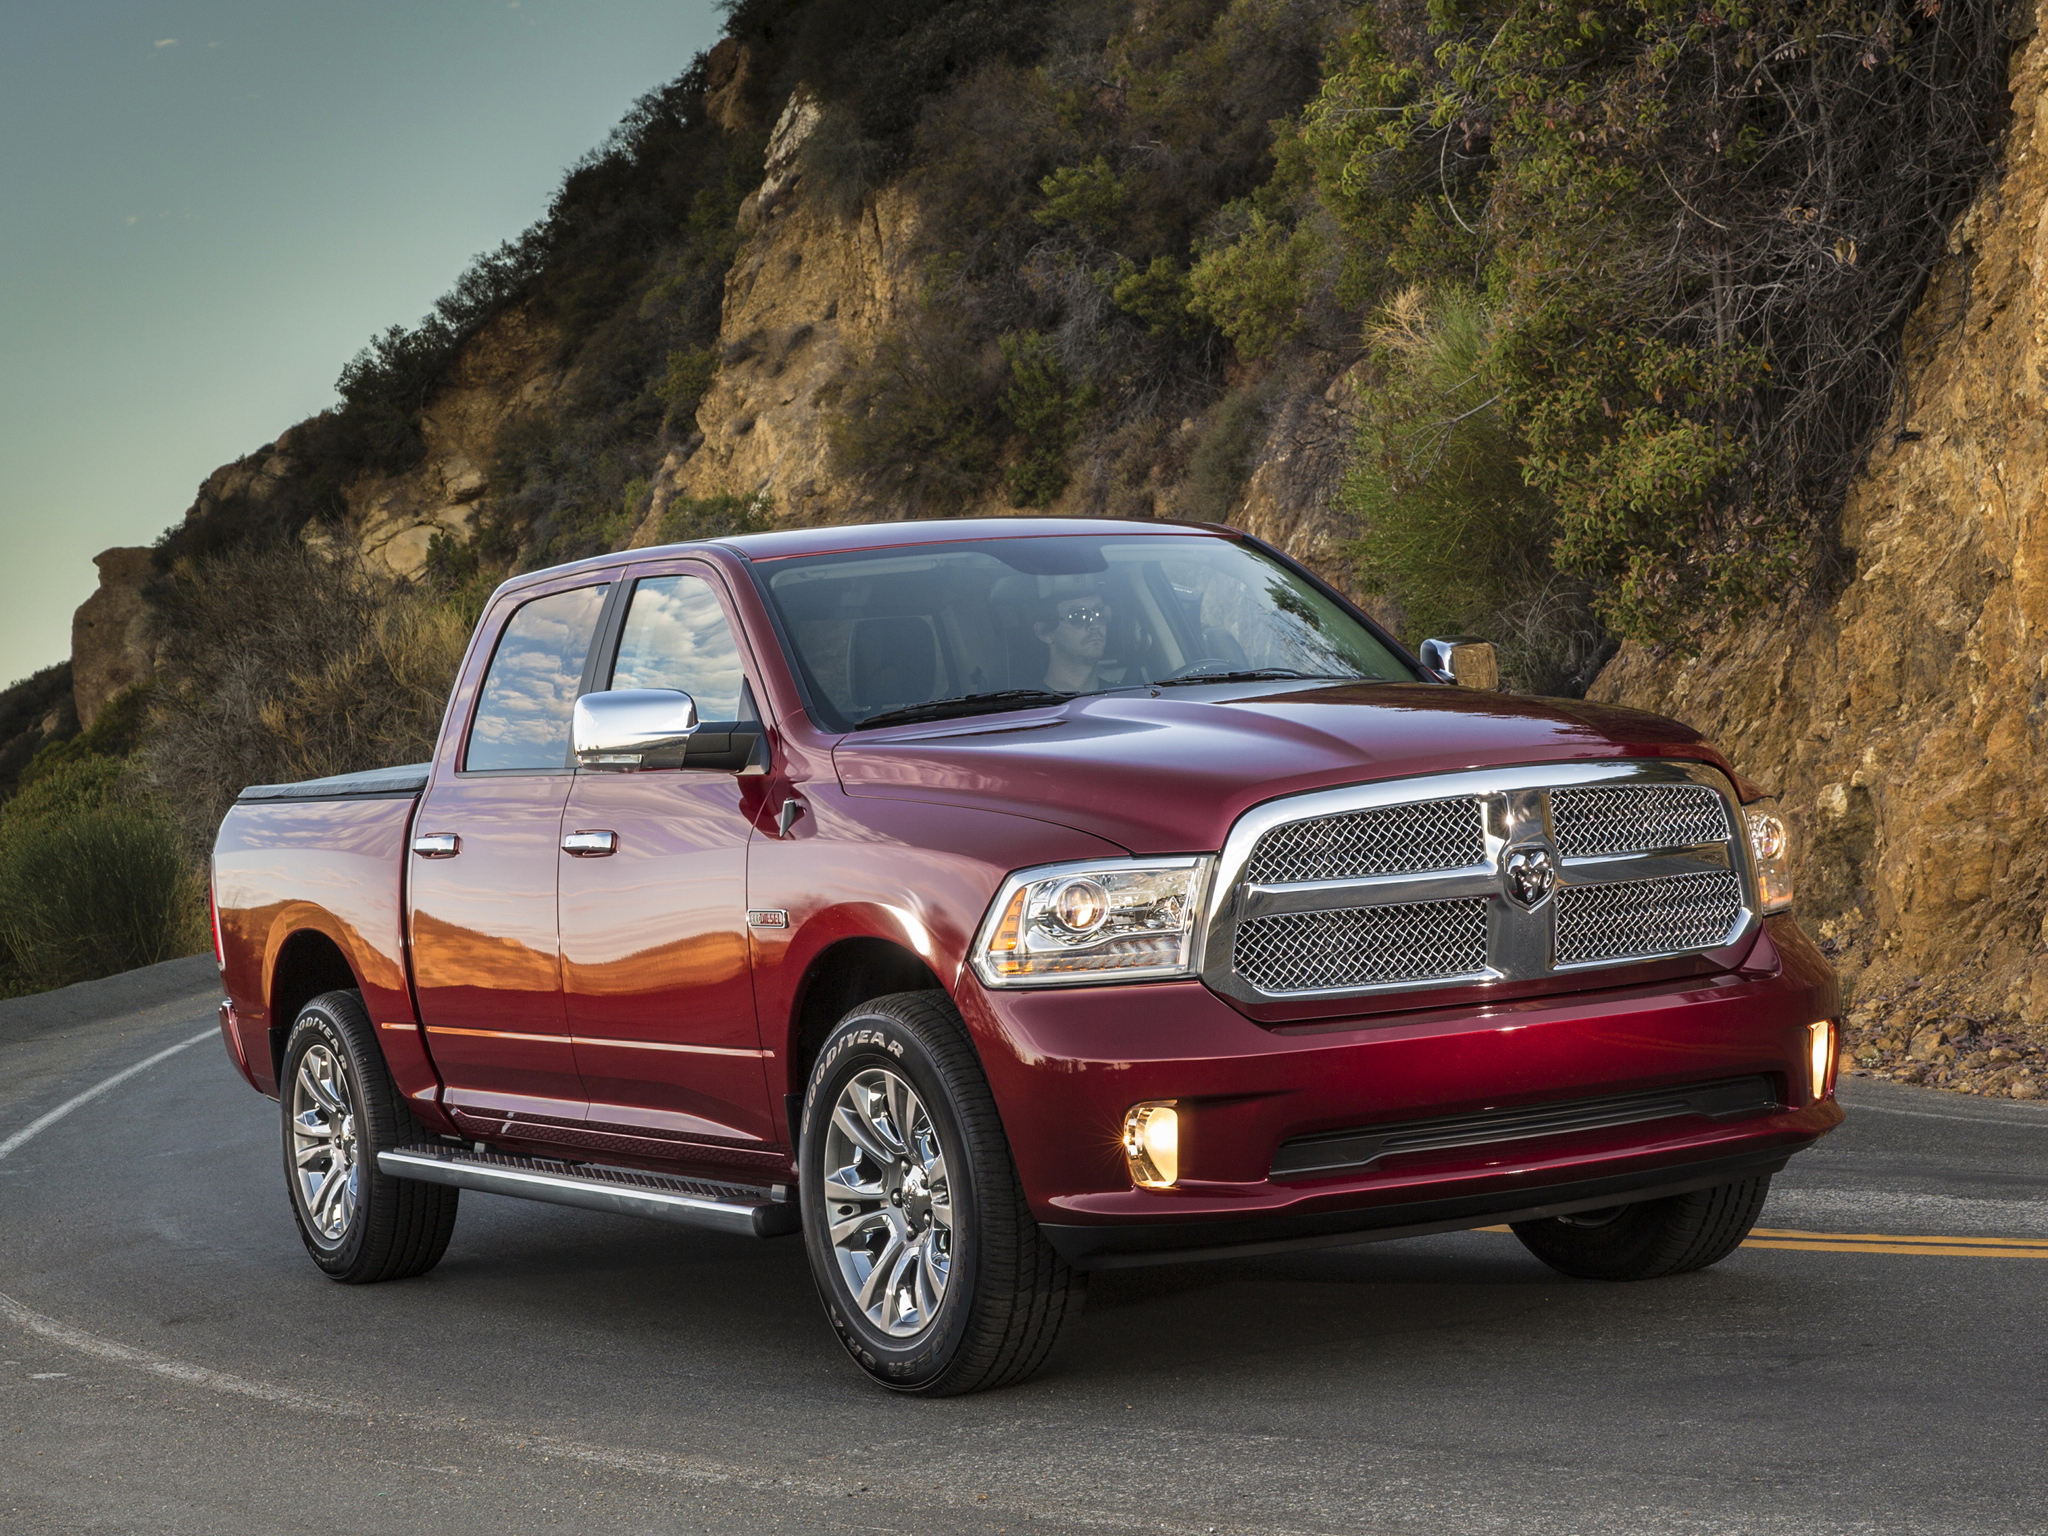 2014 Dodge Ram 1500 Laramie Limited Crew Cab 4x4 pickup f wallpaper